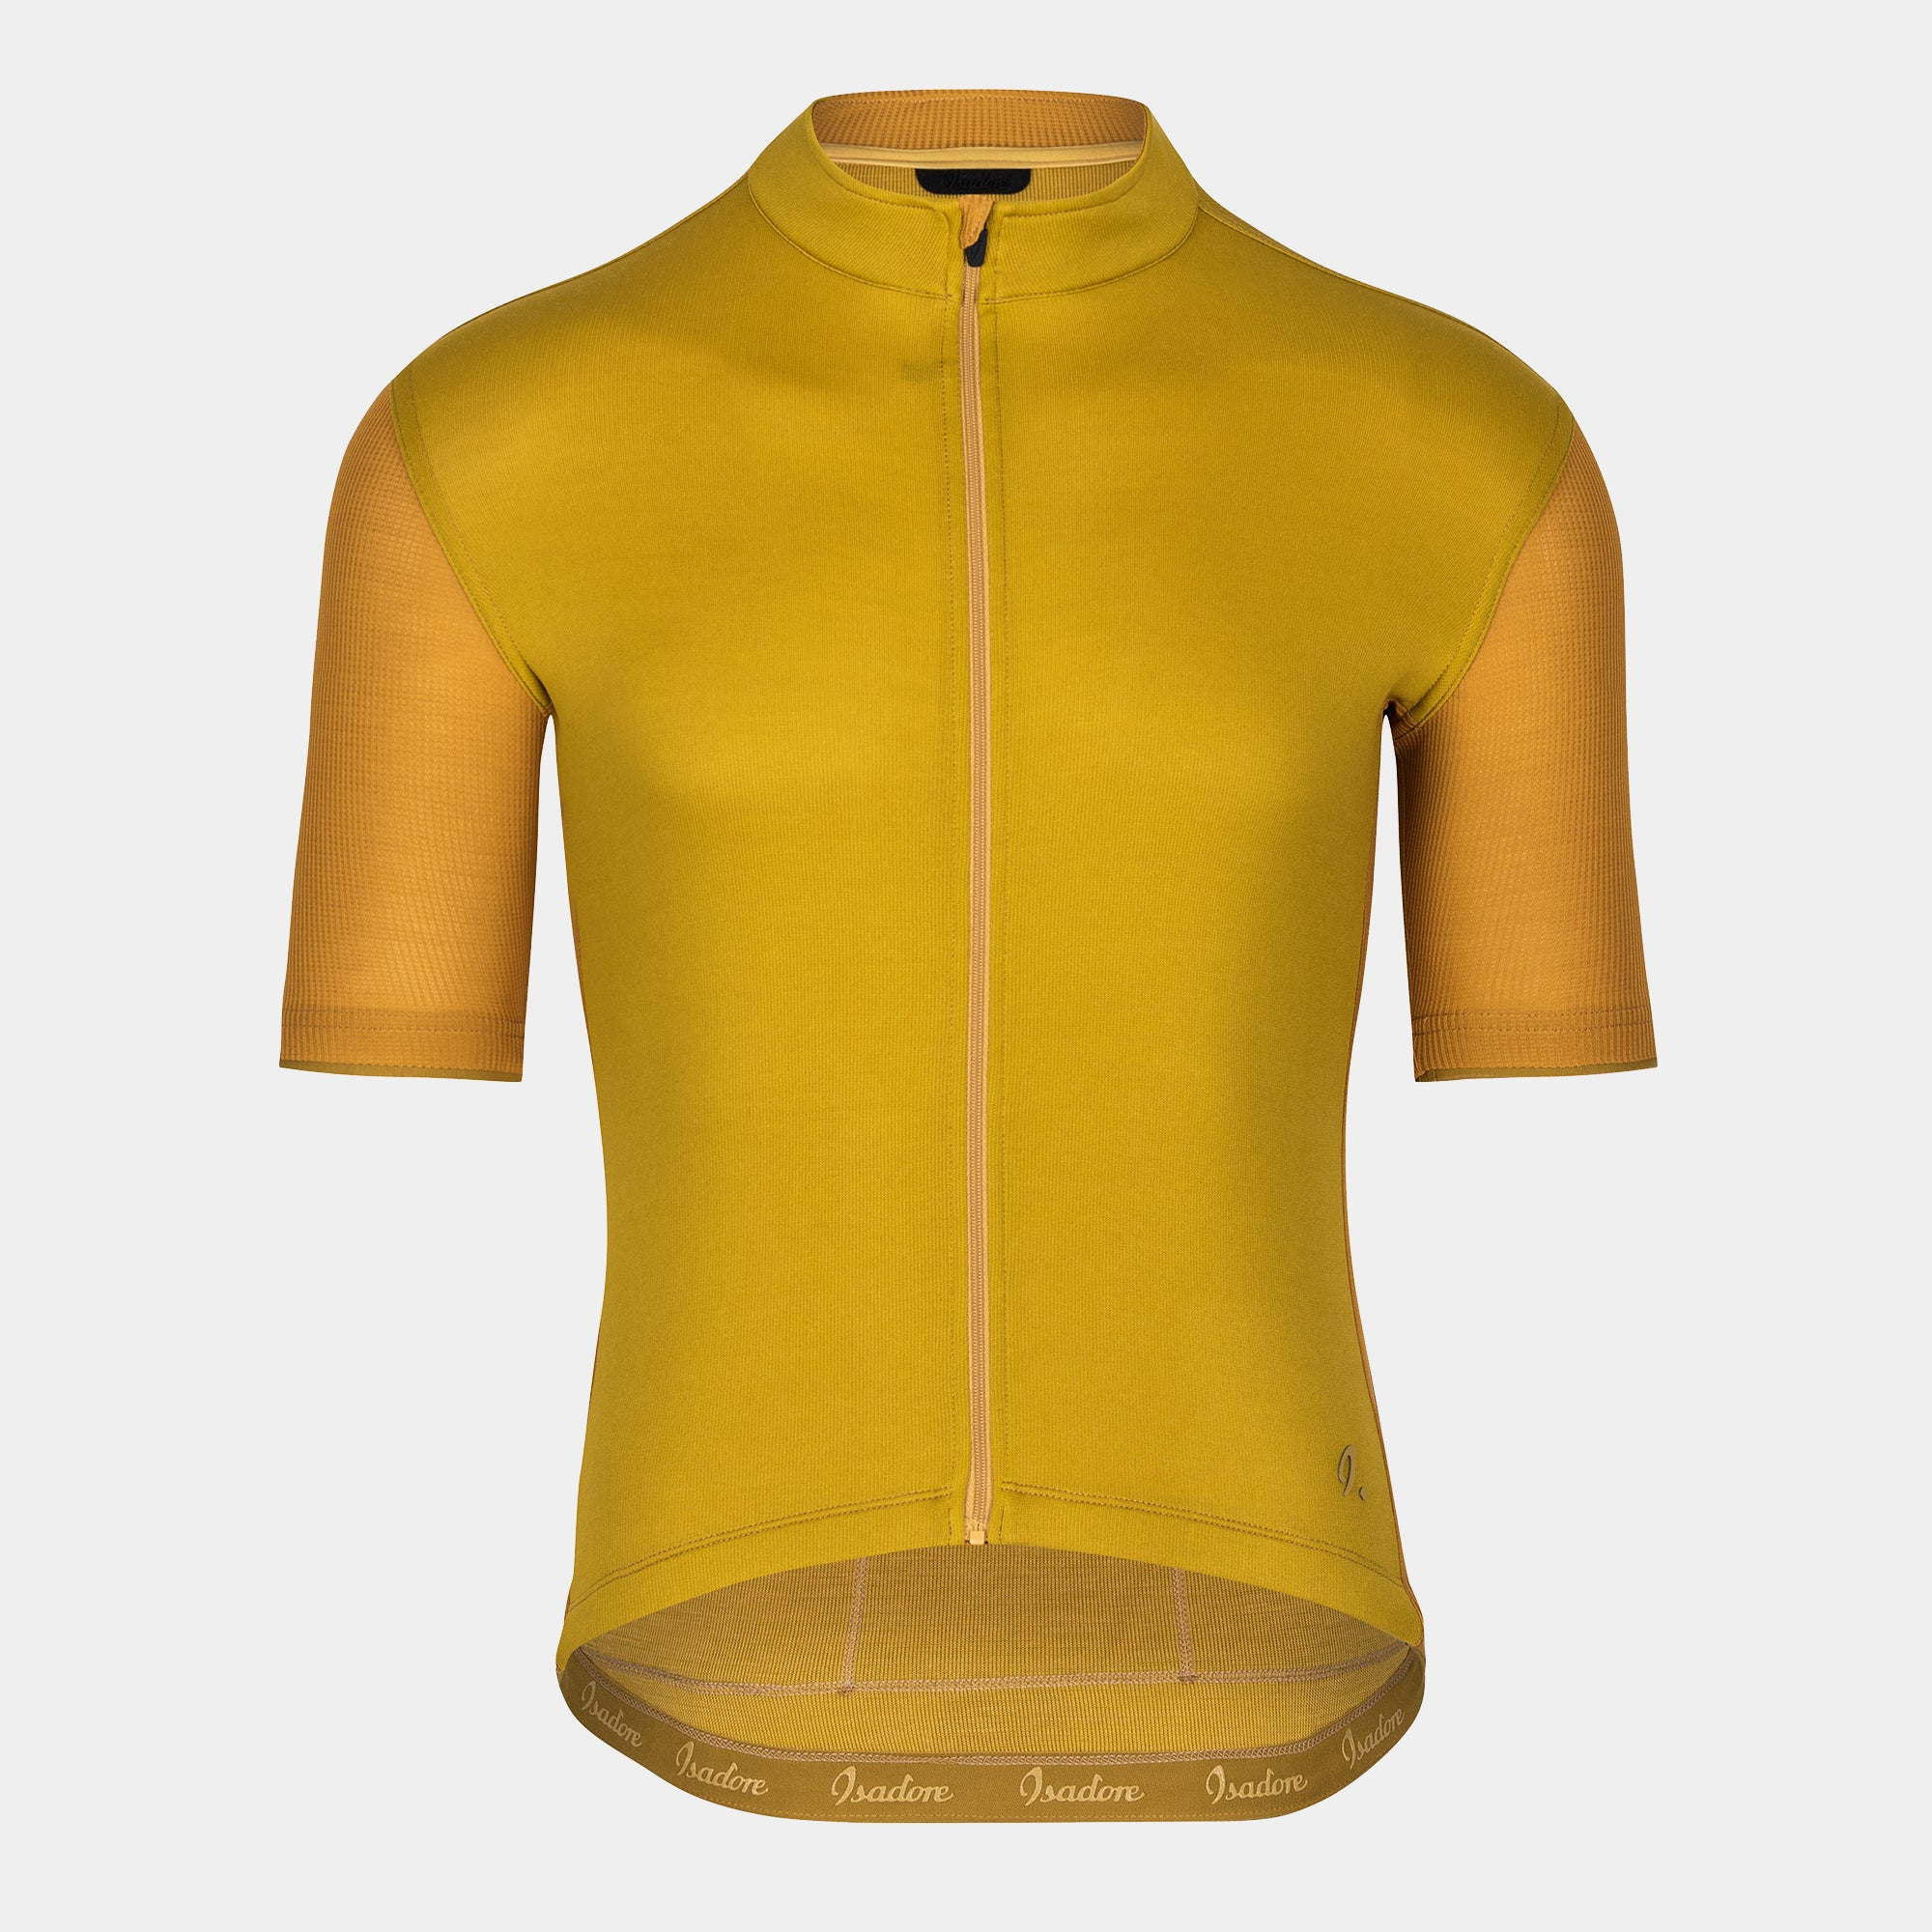 Signature Cycling Jersey - Olive Oil/Chai Tea